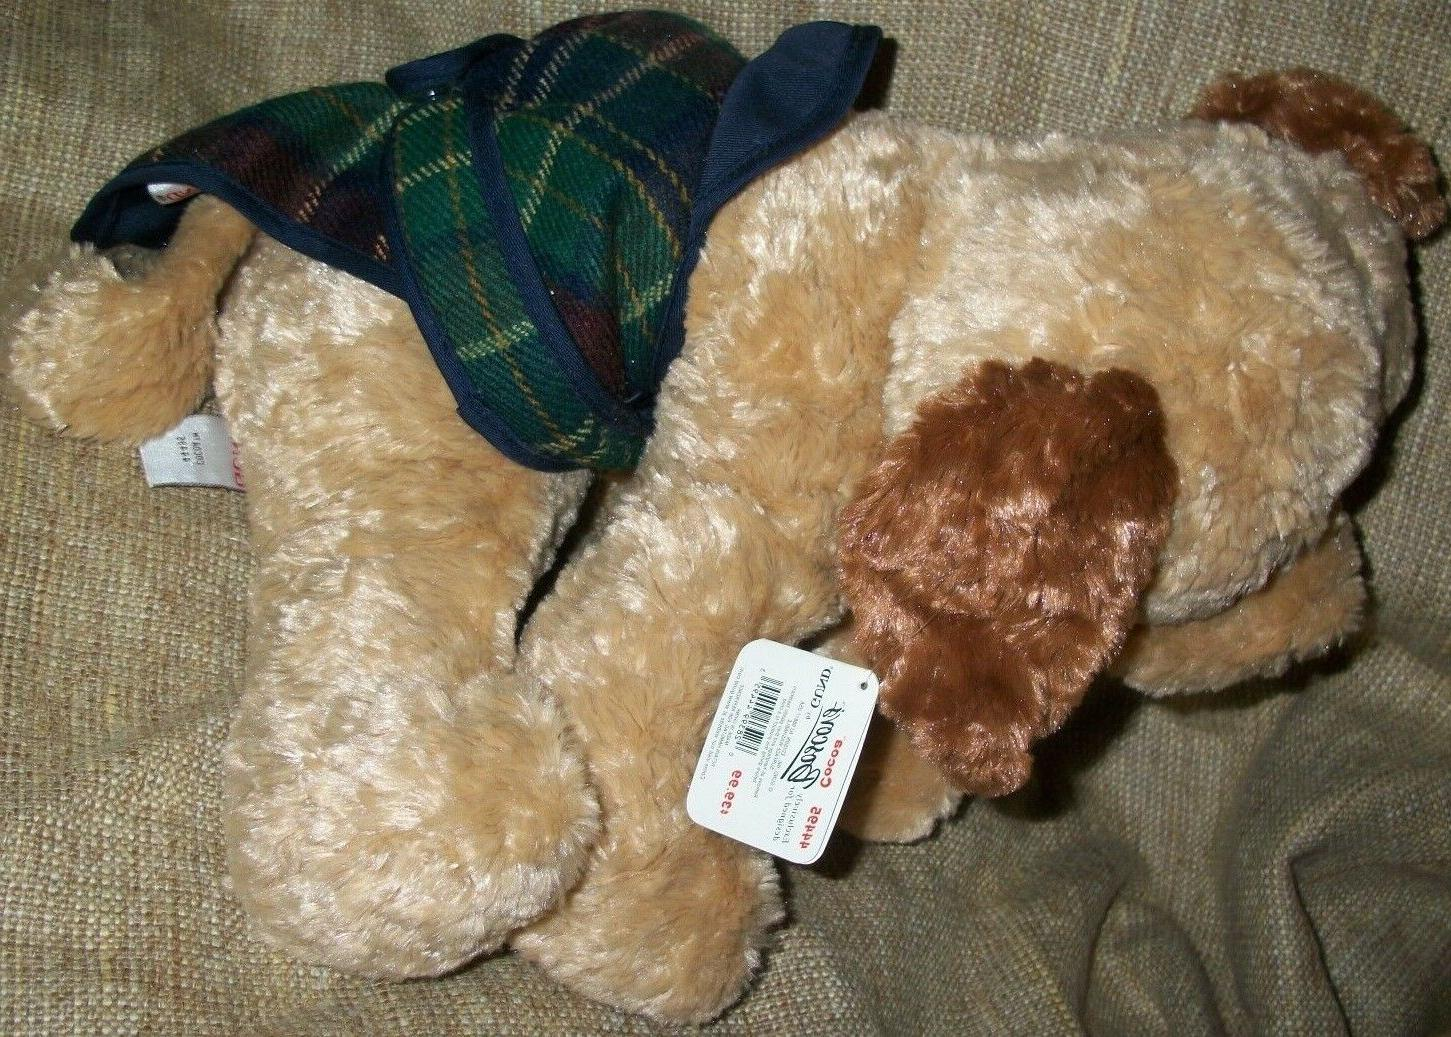 Gund Plush Tan floppy Dog Cocoa Boscov's Plaid w/Tags